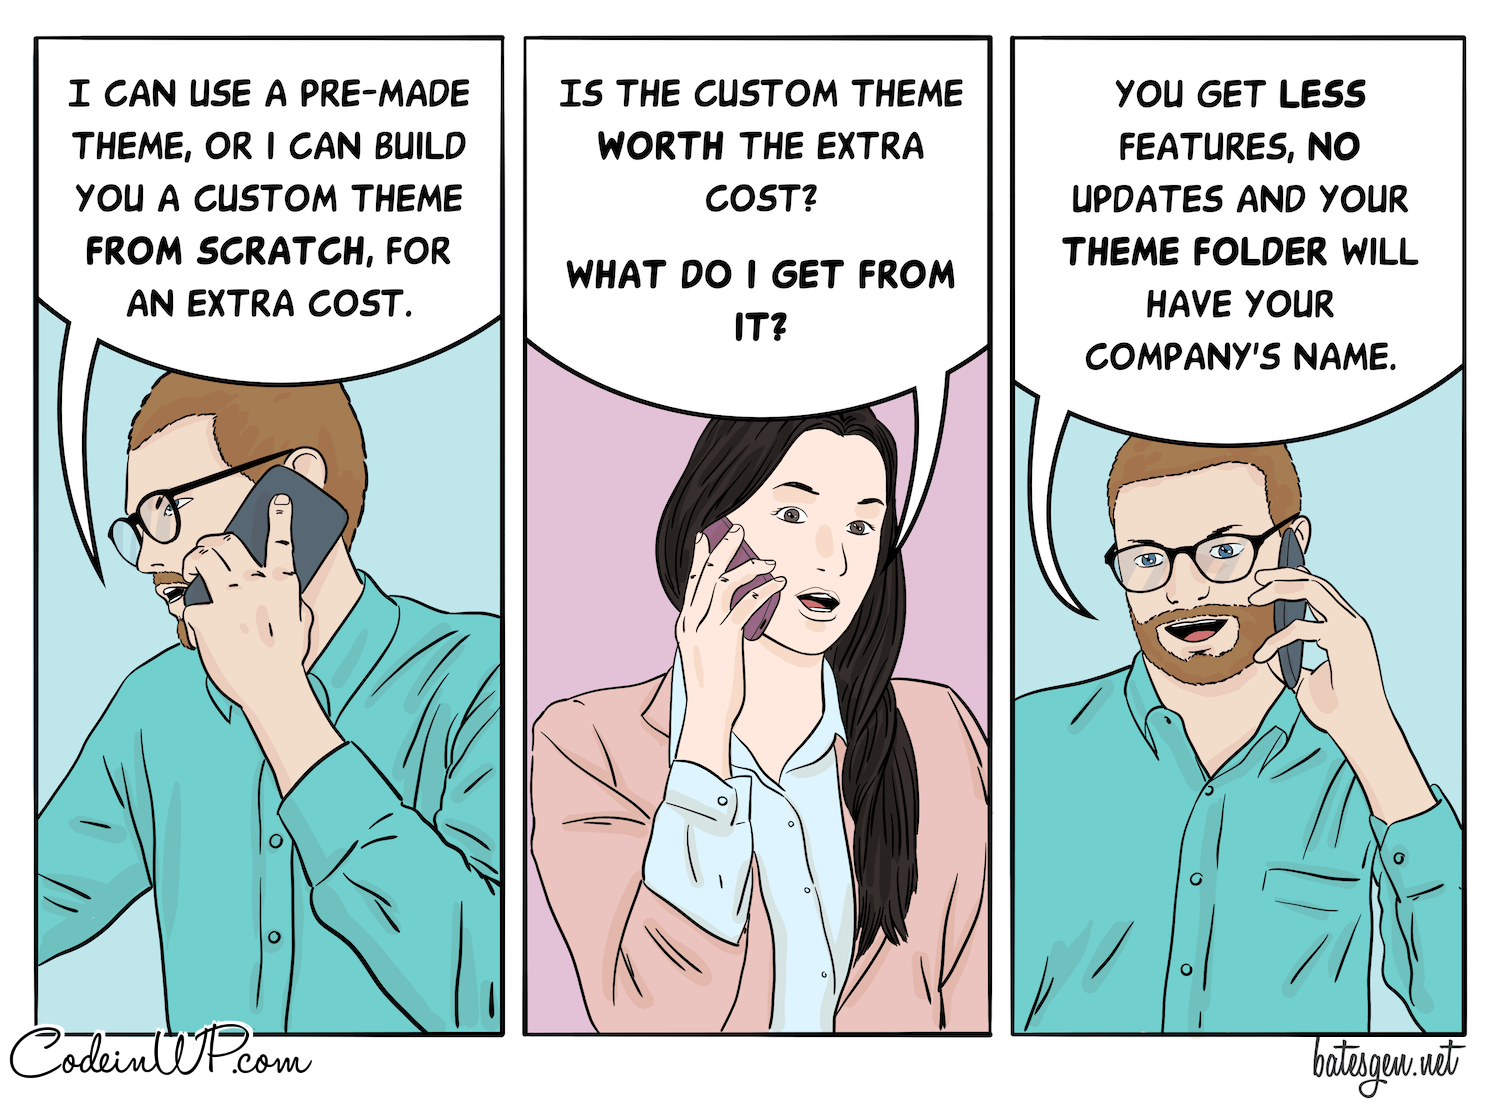 Tech comic on the difference between custom and pre-made WordPress themes